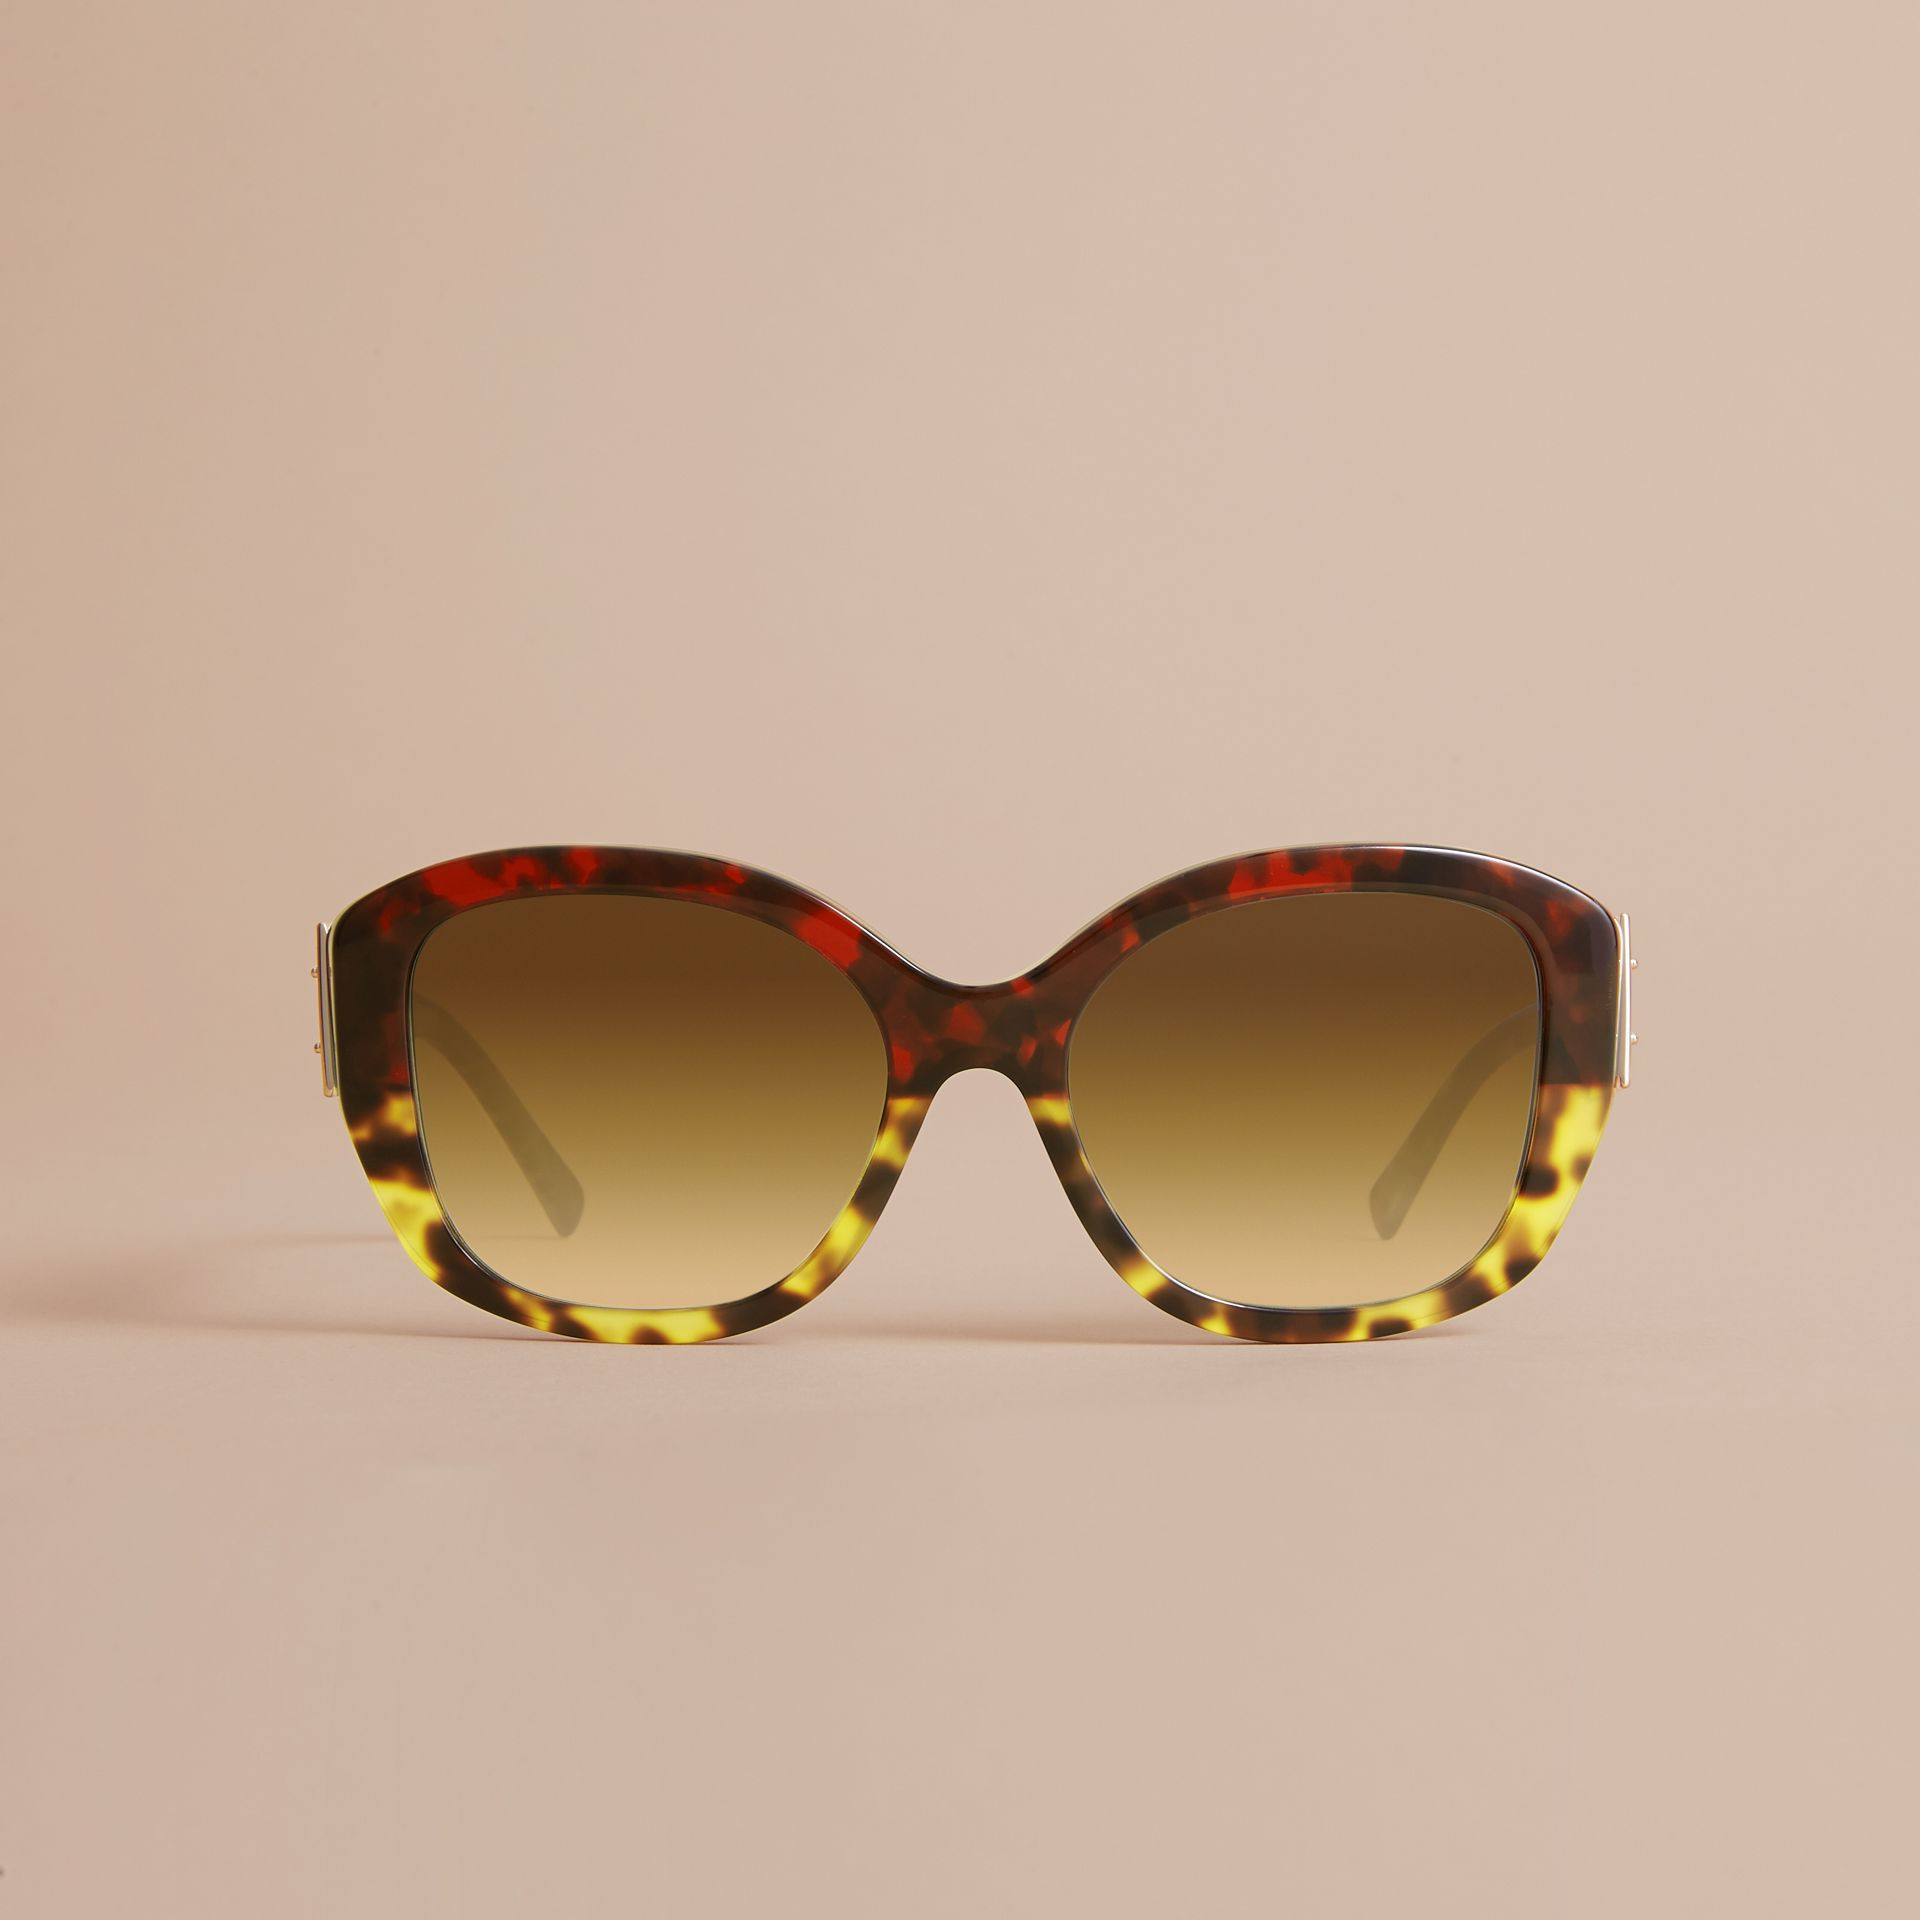 Buckle Detail Oversize Square Frame Sunglasses in Amber Yellow - Women | Burberry Australia - gallery image 3